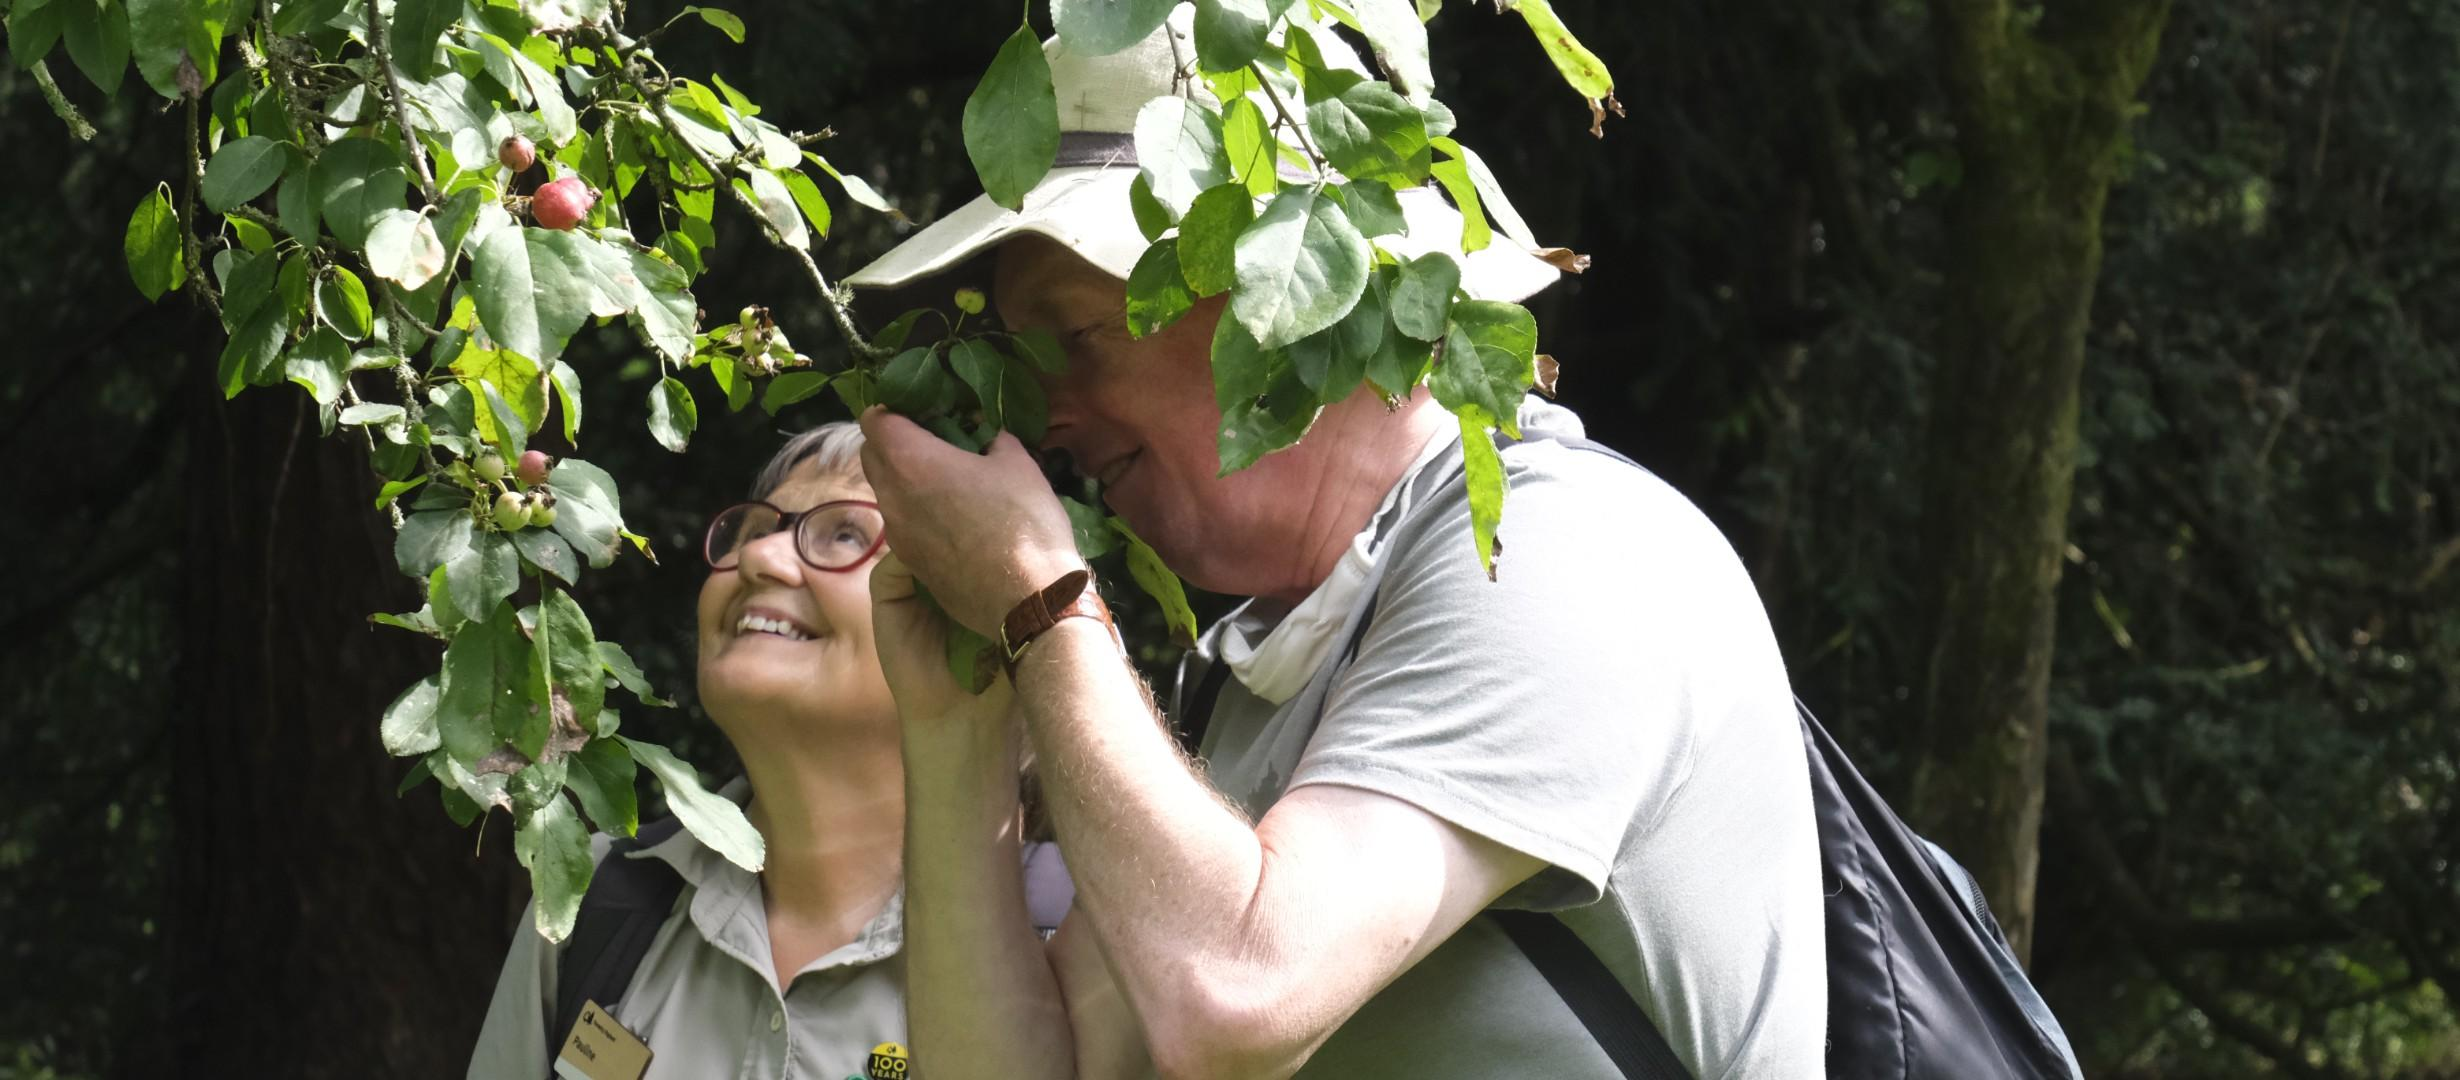 A gentleman brings a branch covered in lush green leaves close to his nose to smell the aroma. A woman by his side looks up joyfully towards the top of the tree.